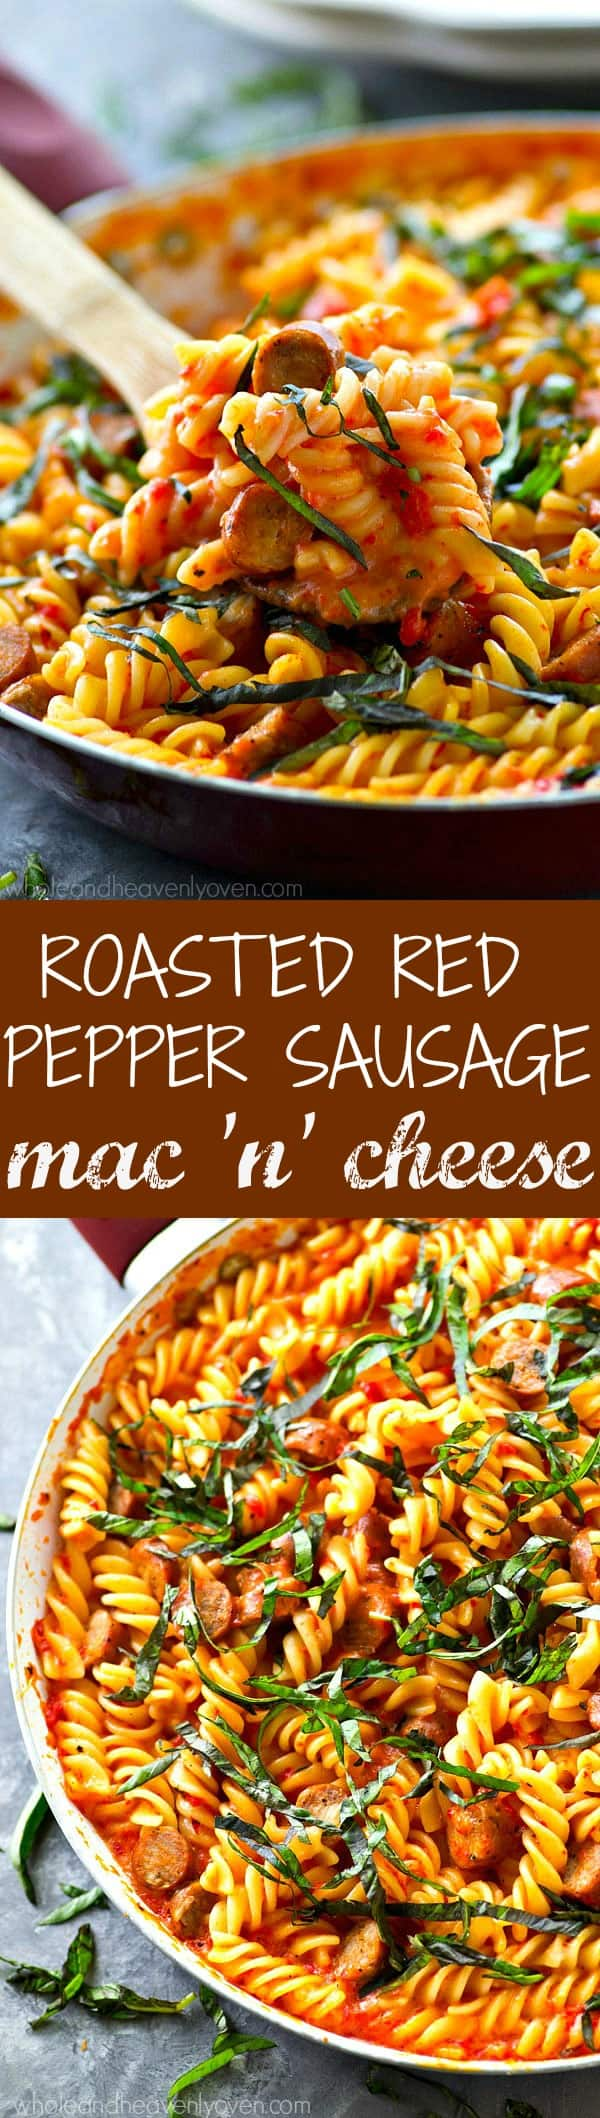 Take that weeknight mac 'n' cheese up a notch! This skillet mac 'n' cheese is smothered in a flavorful roasted red pepper cheese sauce and loaded with tons of sliced sausage.